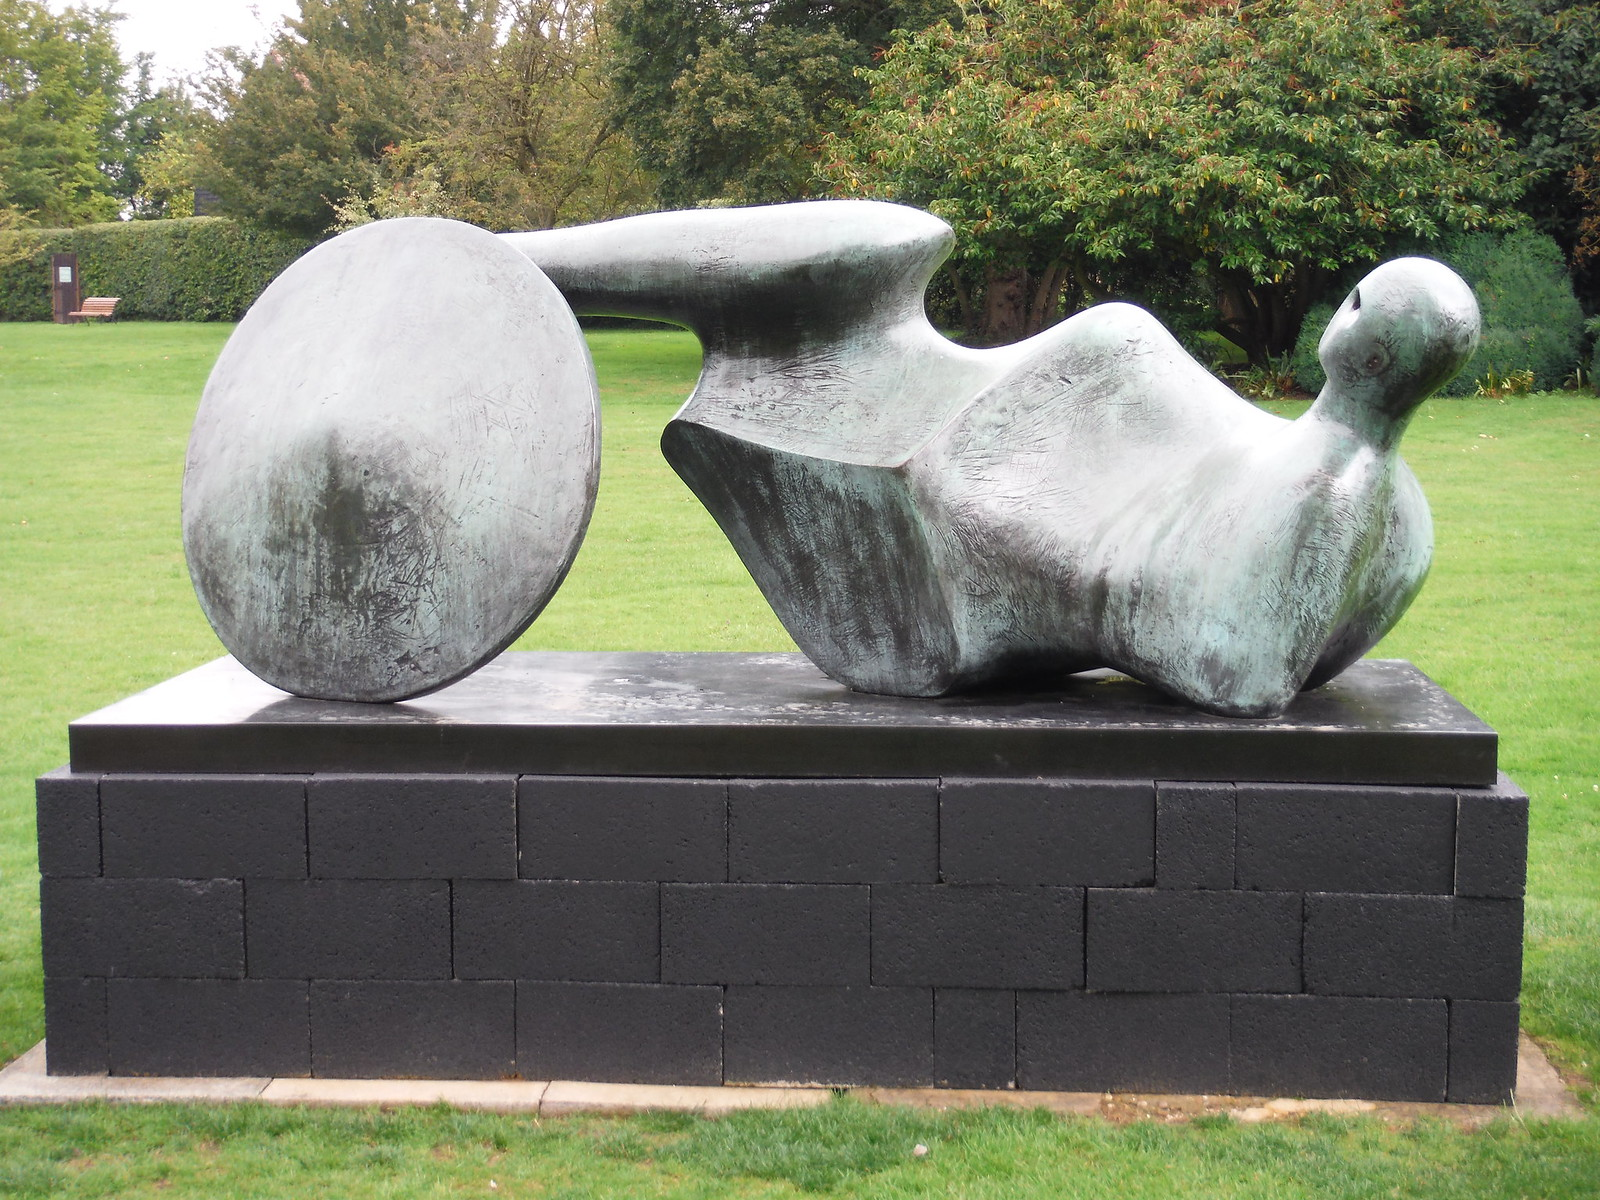 Goslar Warrior (1973-74) SWC Walk 164 Roydon to Sawbridgeworth via Henry Moore Foundation